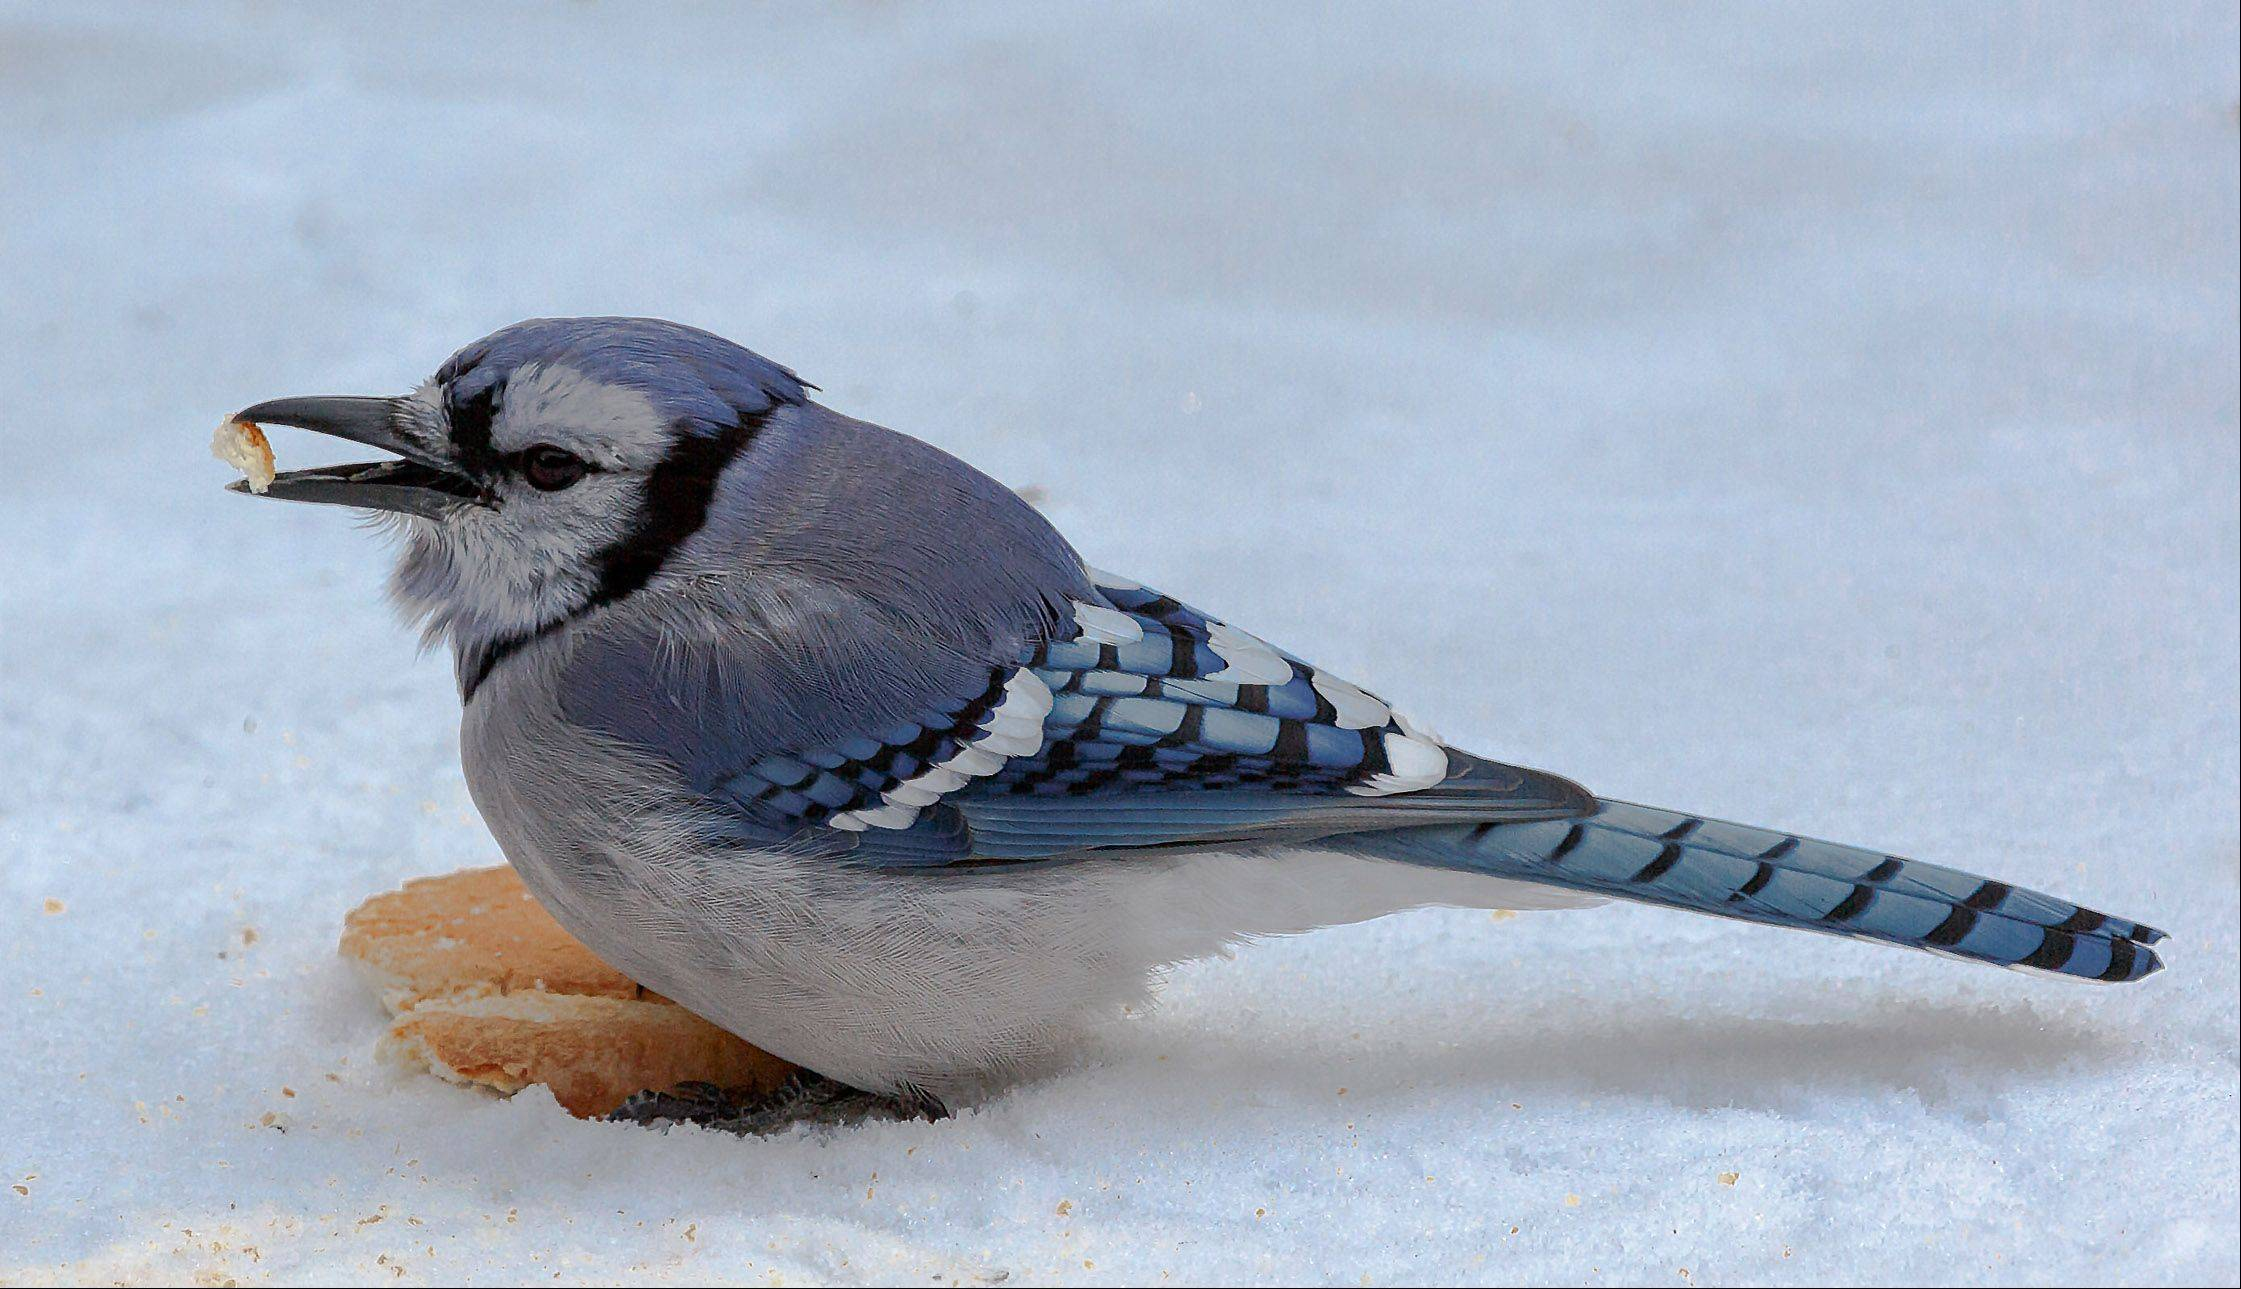 A blue jay with a piece of bread in his beak at an Ingleside backyard on January 7th.